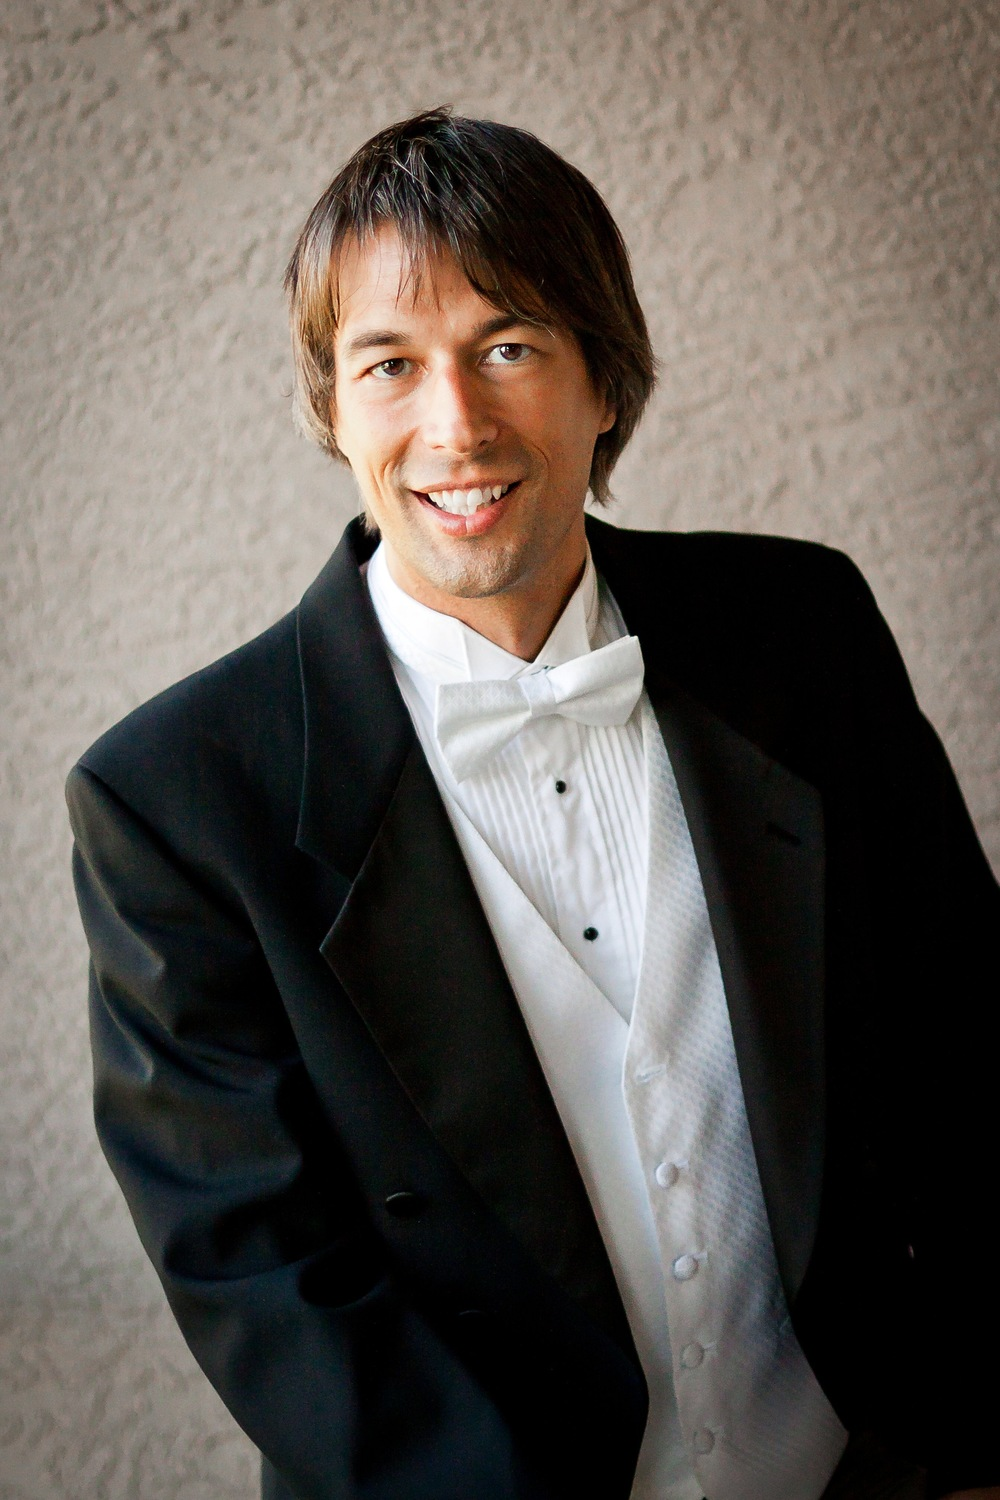 Dr. Trent Brown, Associate Professor of Music at Florida Gulf Coast University